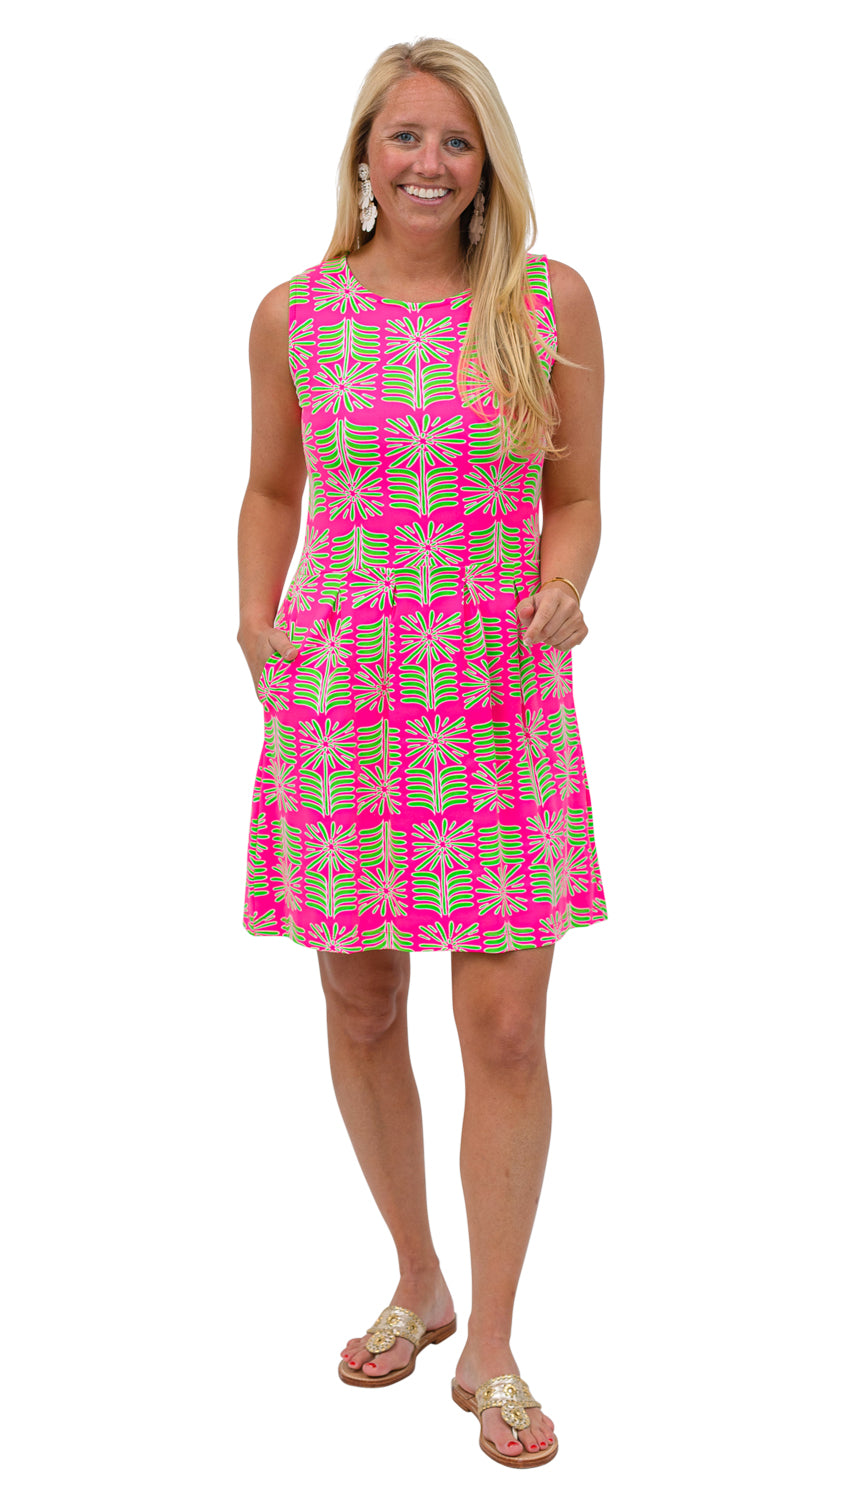 Boardwalk Dress - Pink/Green Montauk Daisy